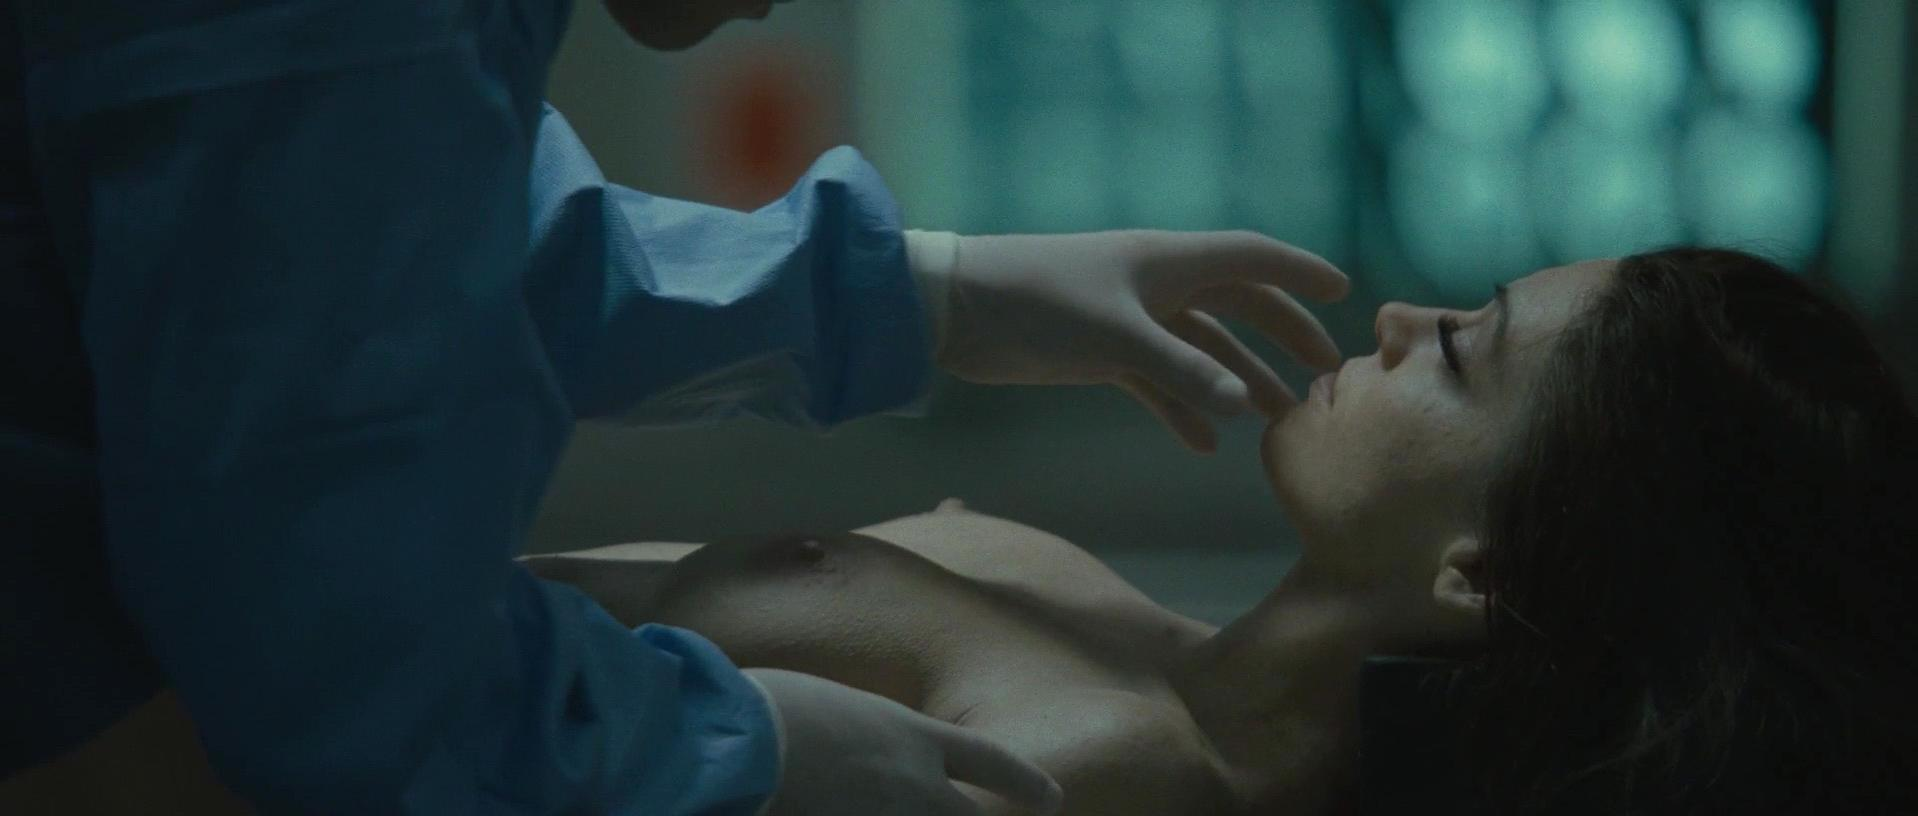 Alyssa Milano nude - Pathology (2008)